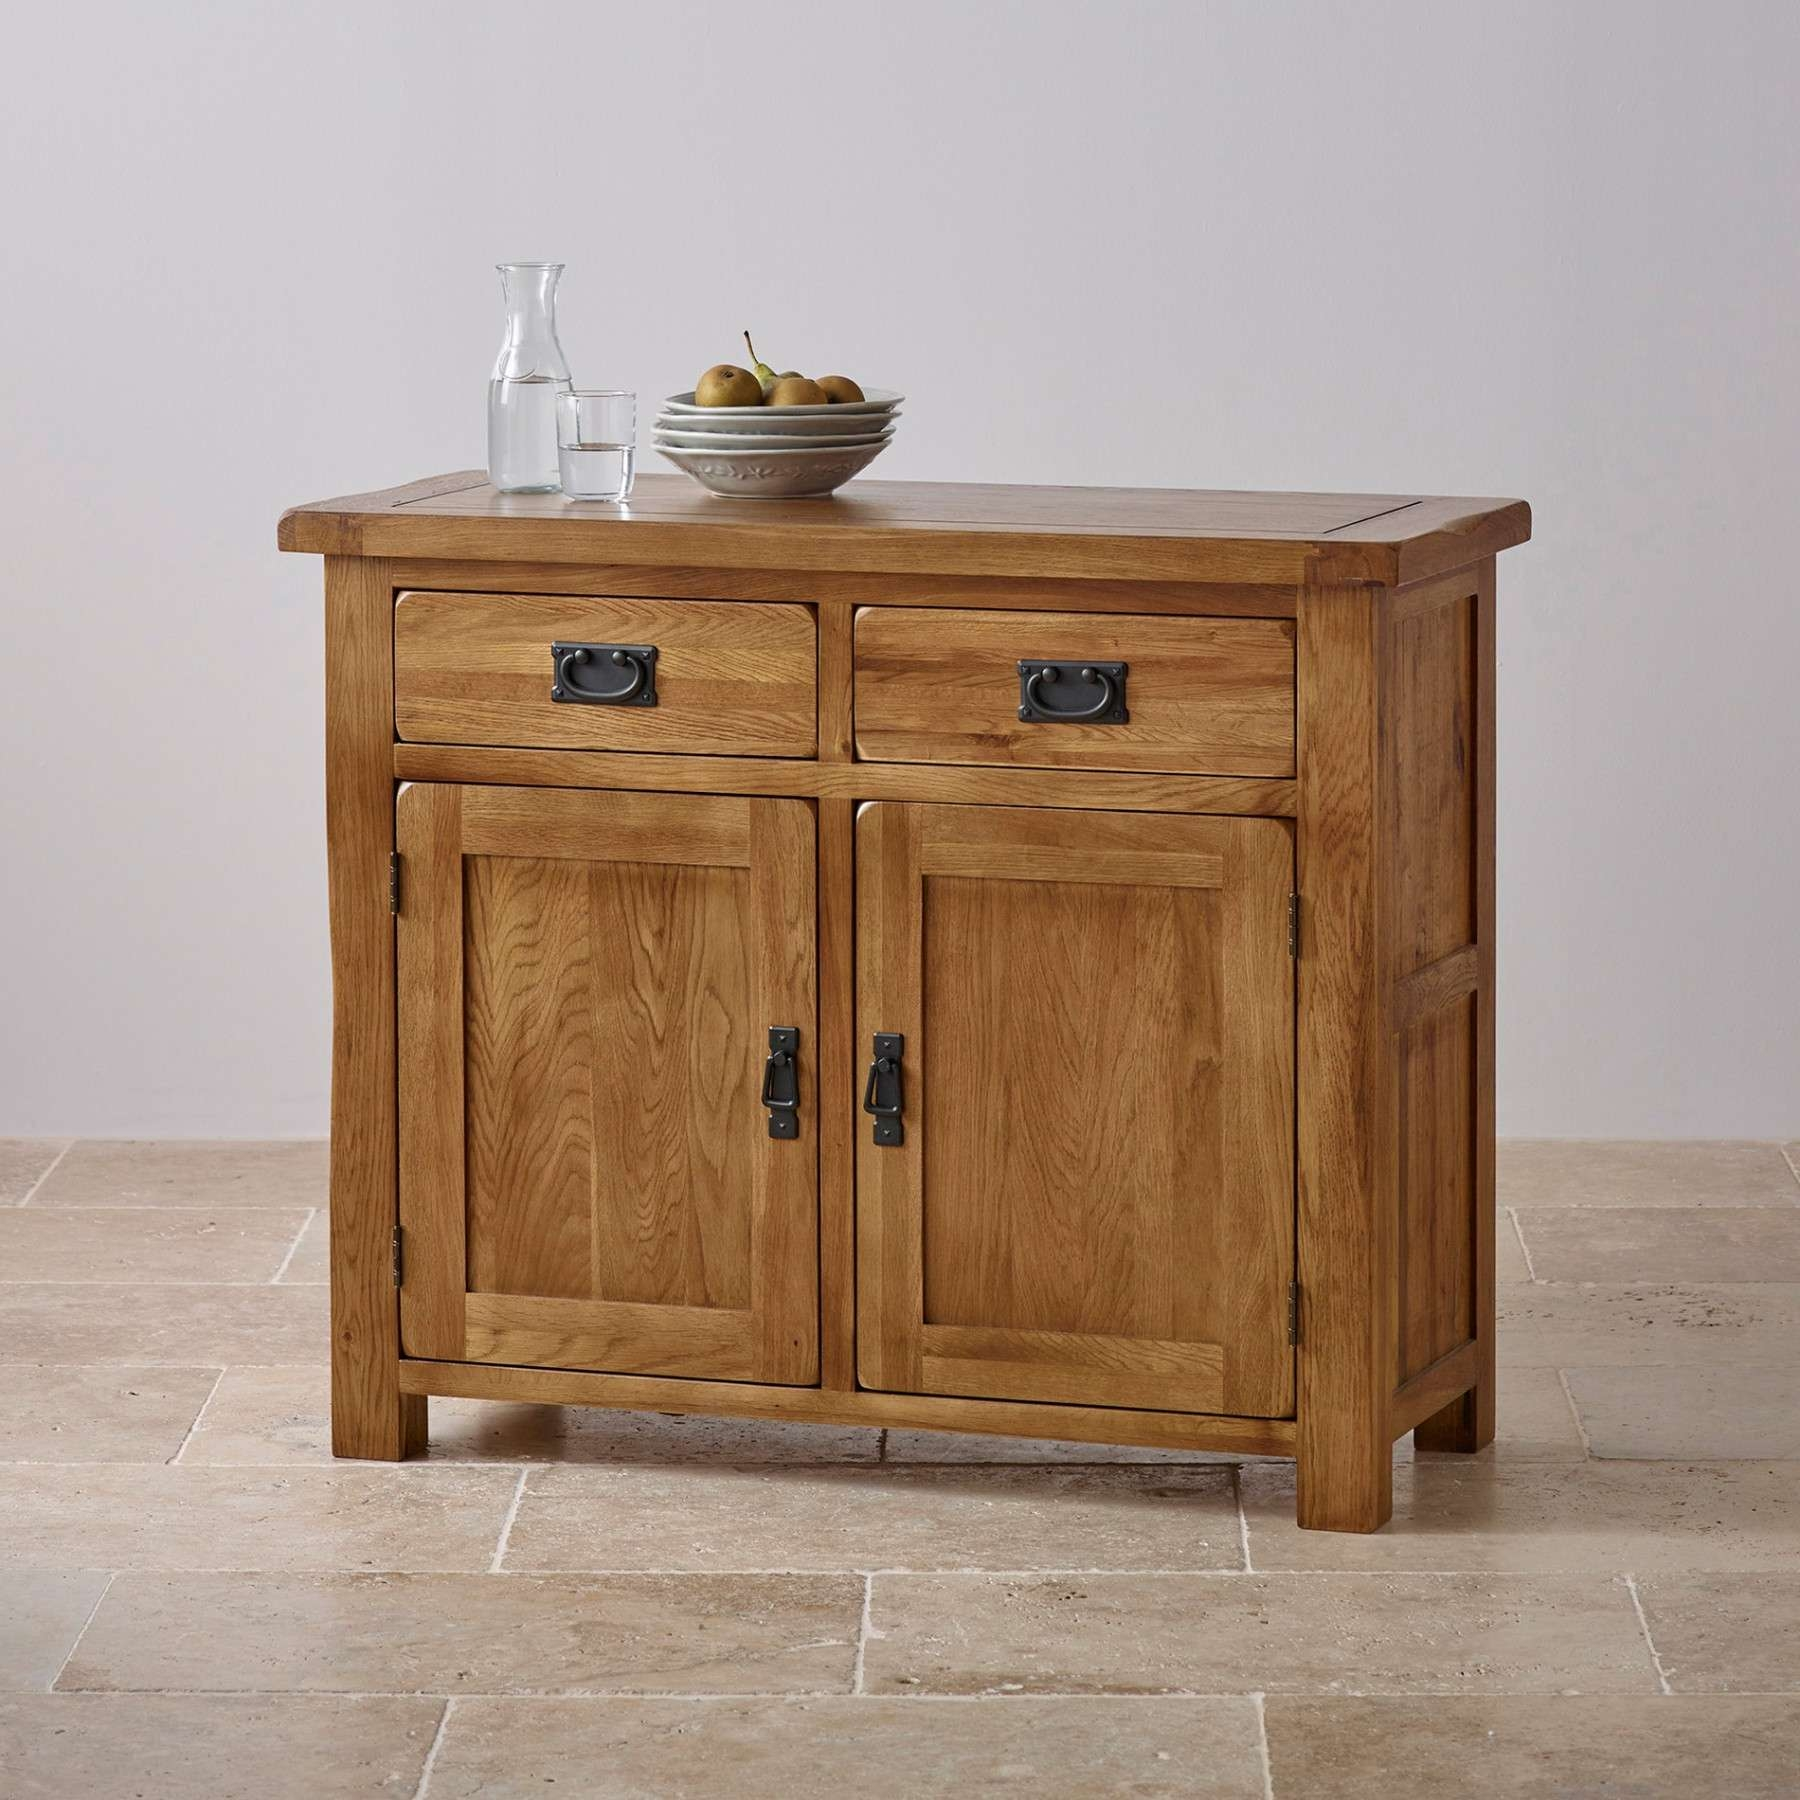 Original Rustic Solid Oak Small Sideboard | Sideboards | Dining In Rustic Sideboards (View 11 of 20)